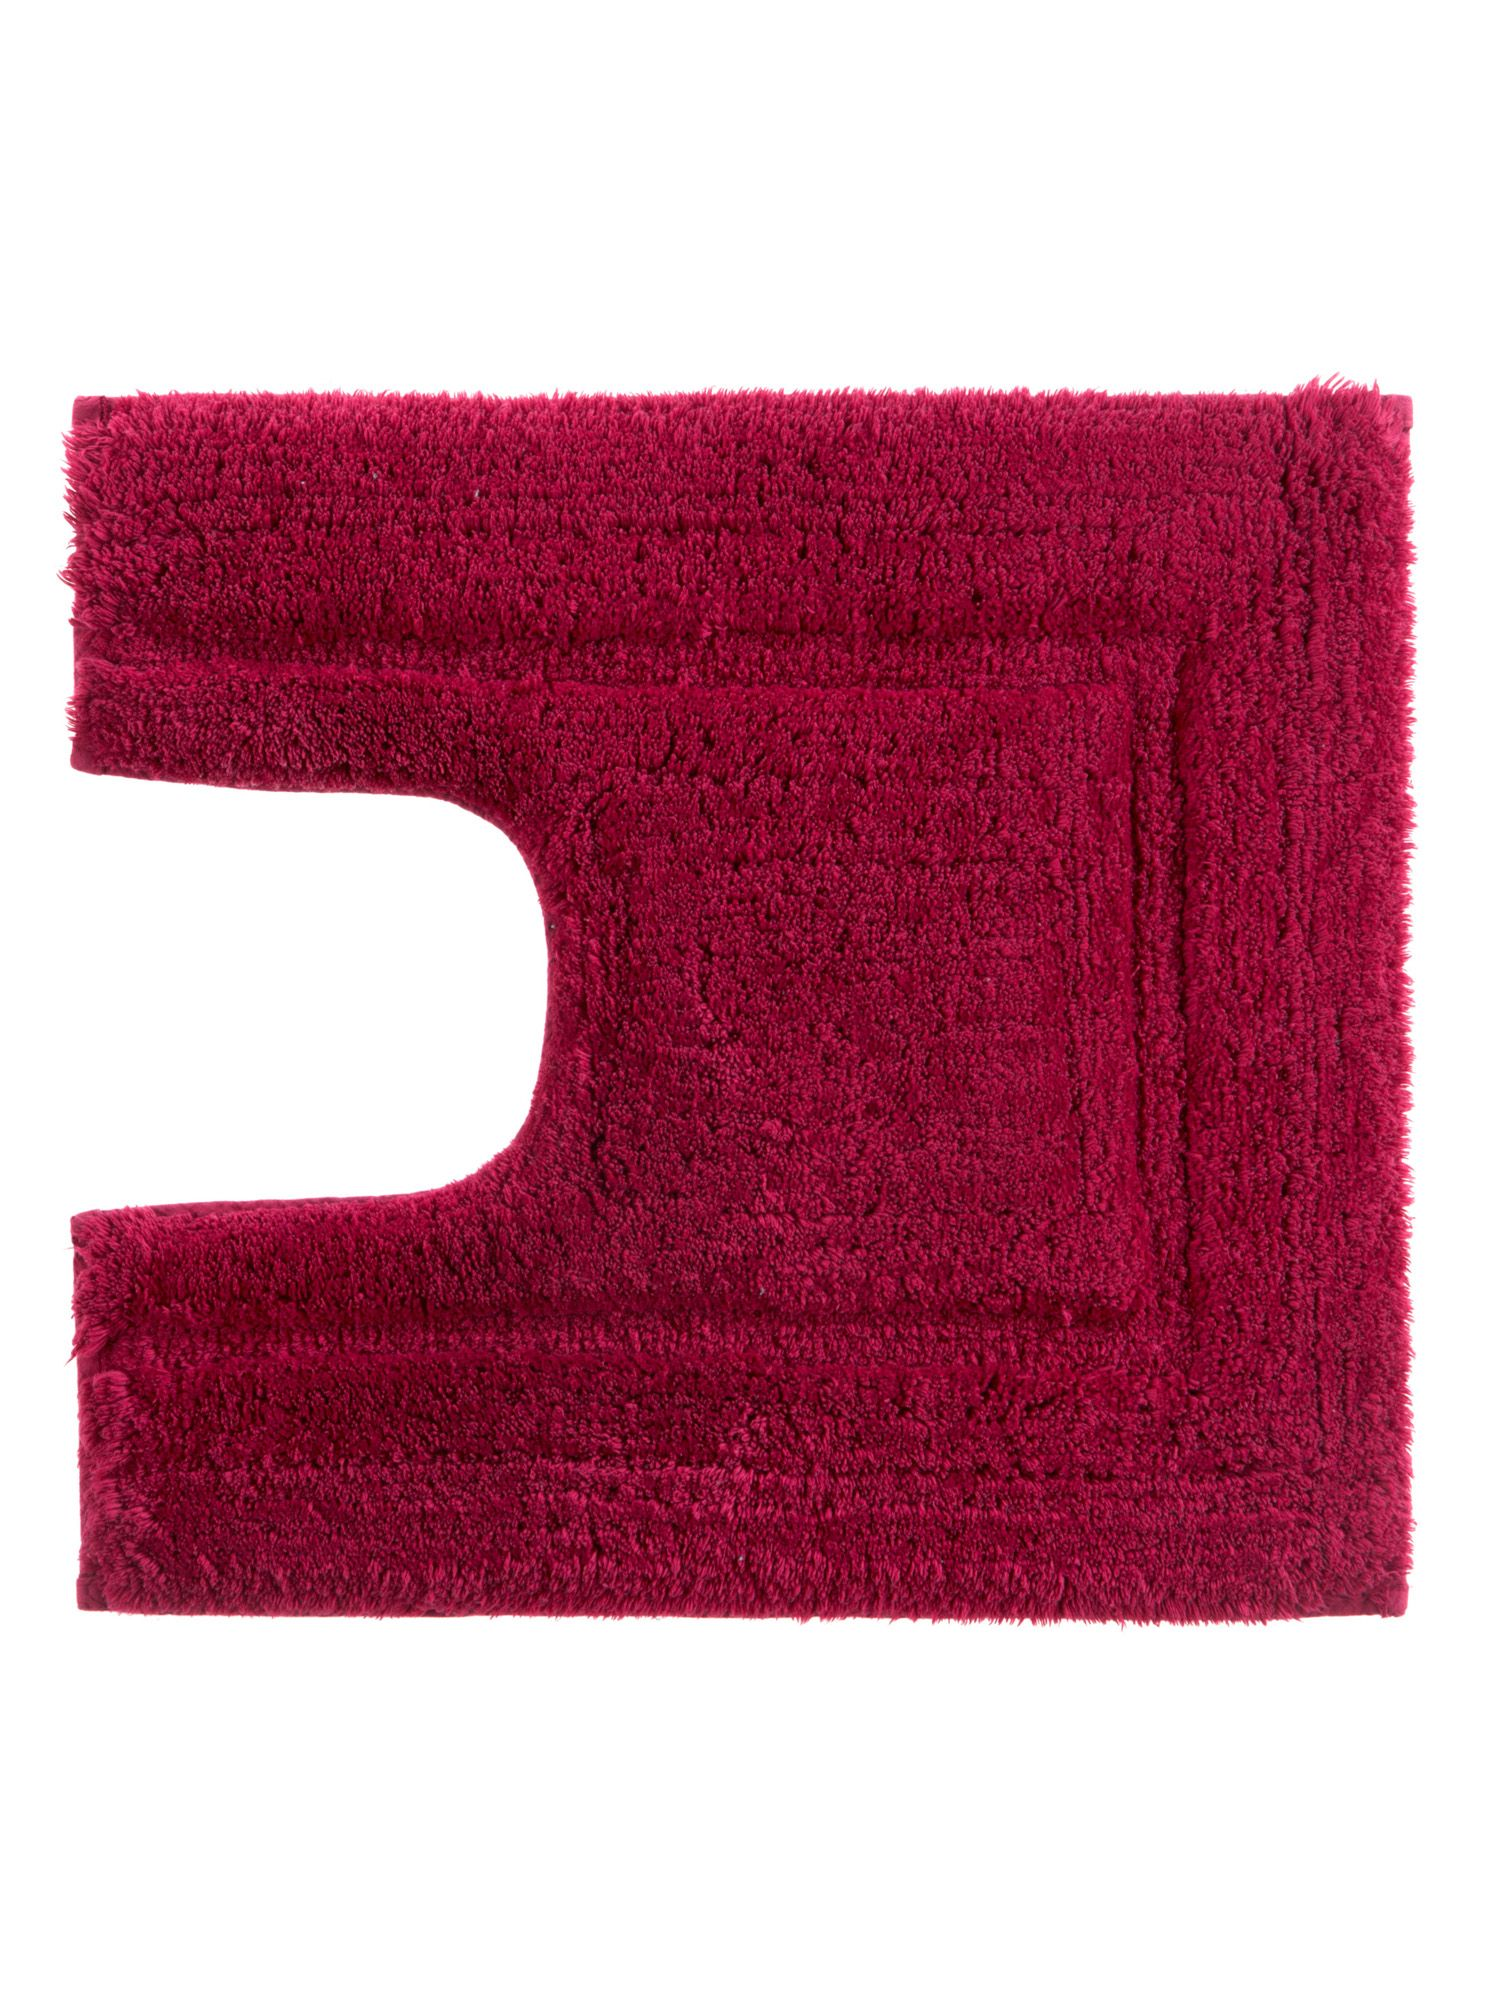 Tufted ped mat 5x55 raspberry by Christy